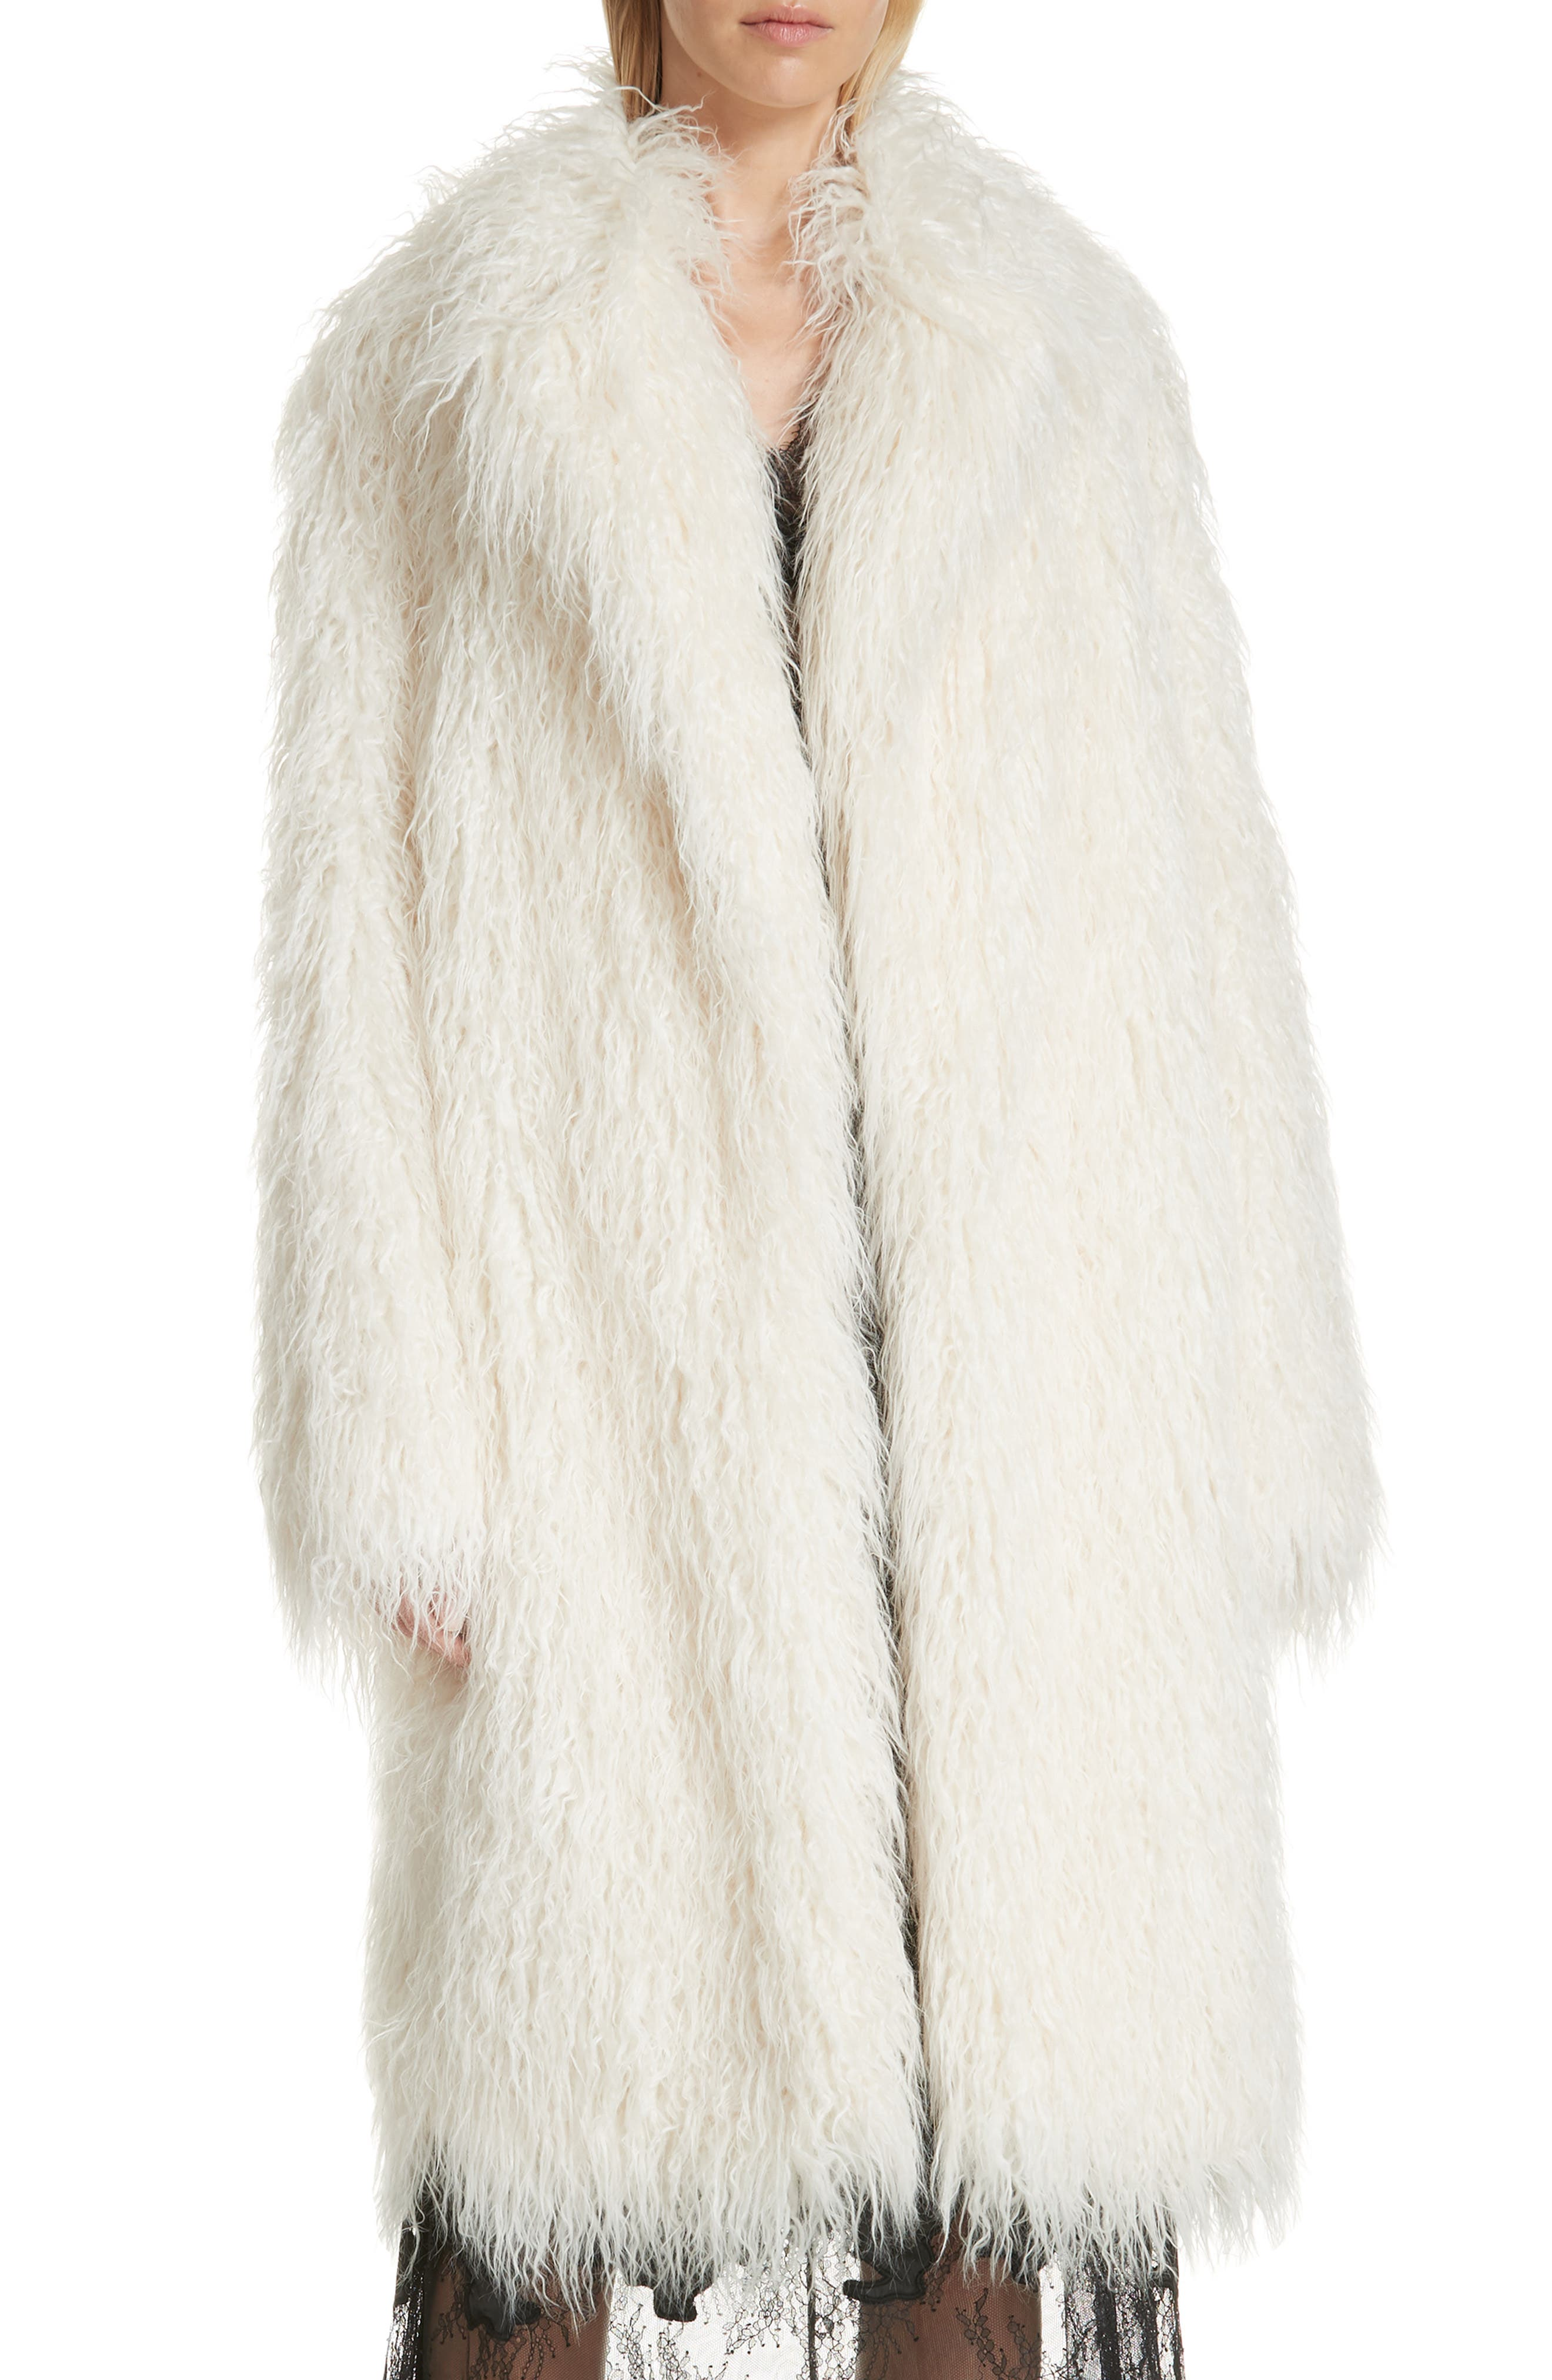 Mongolian Faux Fur Coat,                         Main,                         color, IVORY